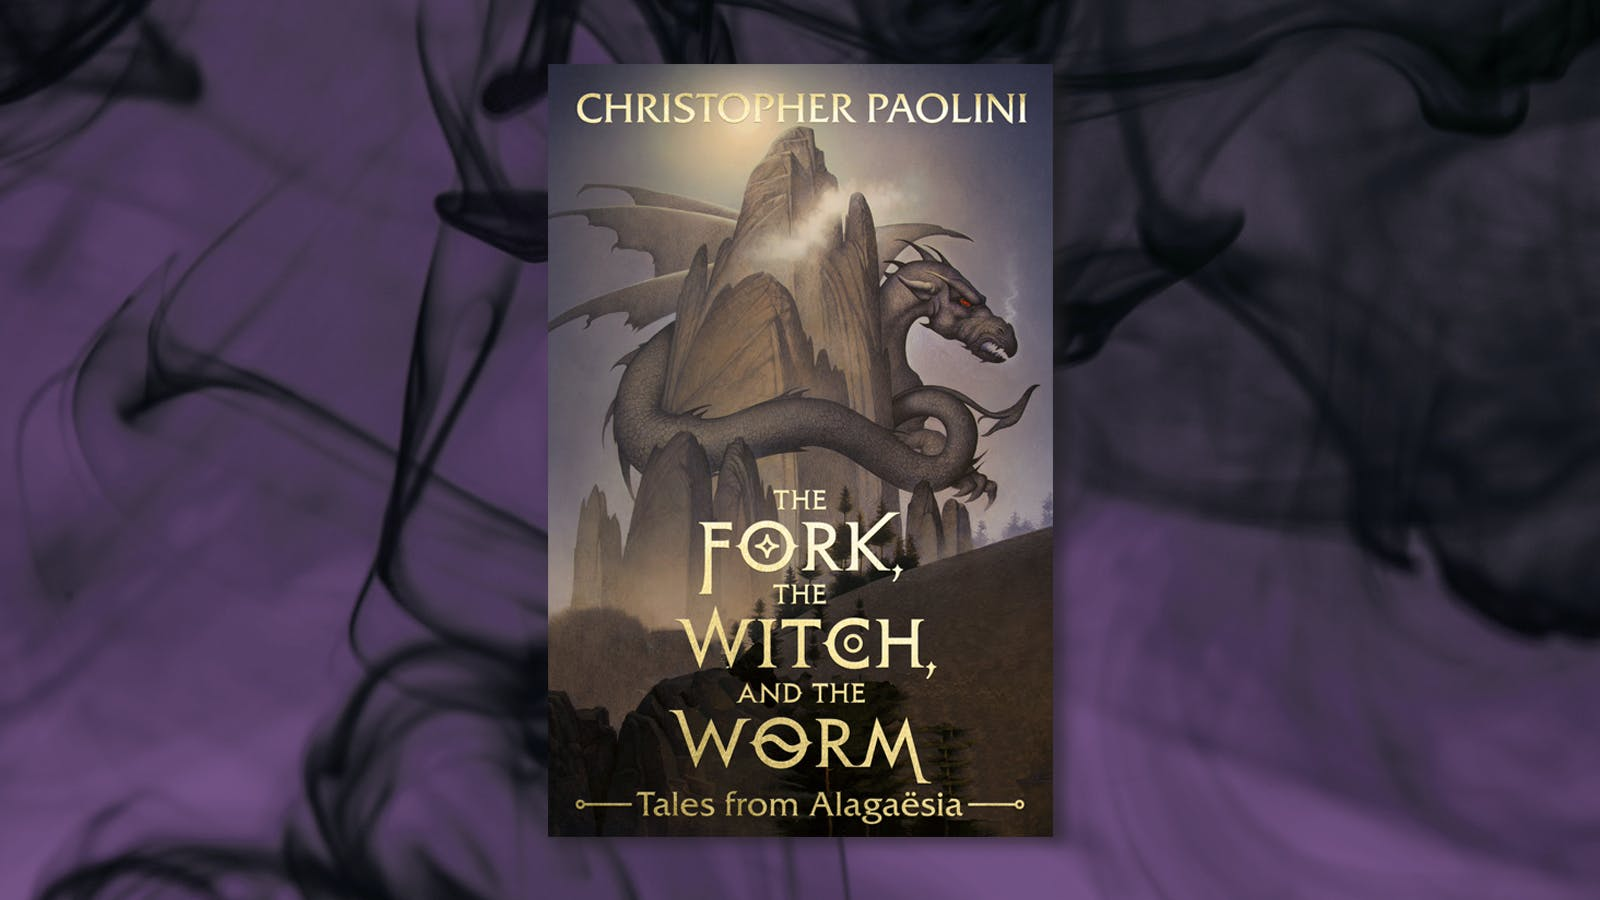 New from the author of Eragon